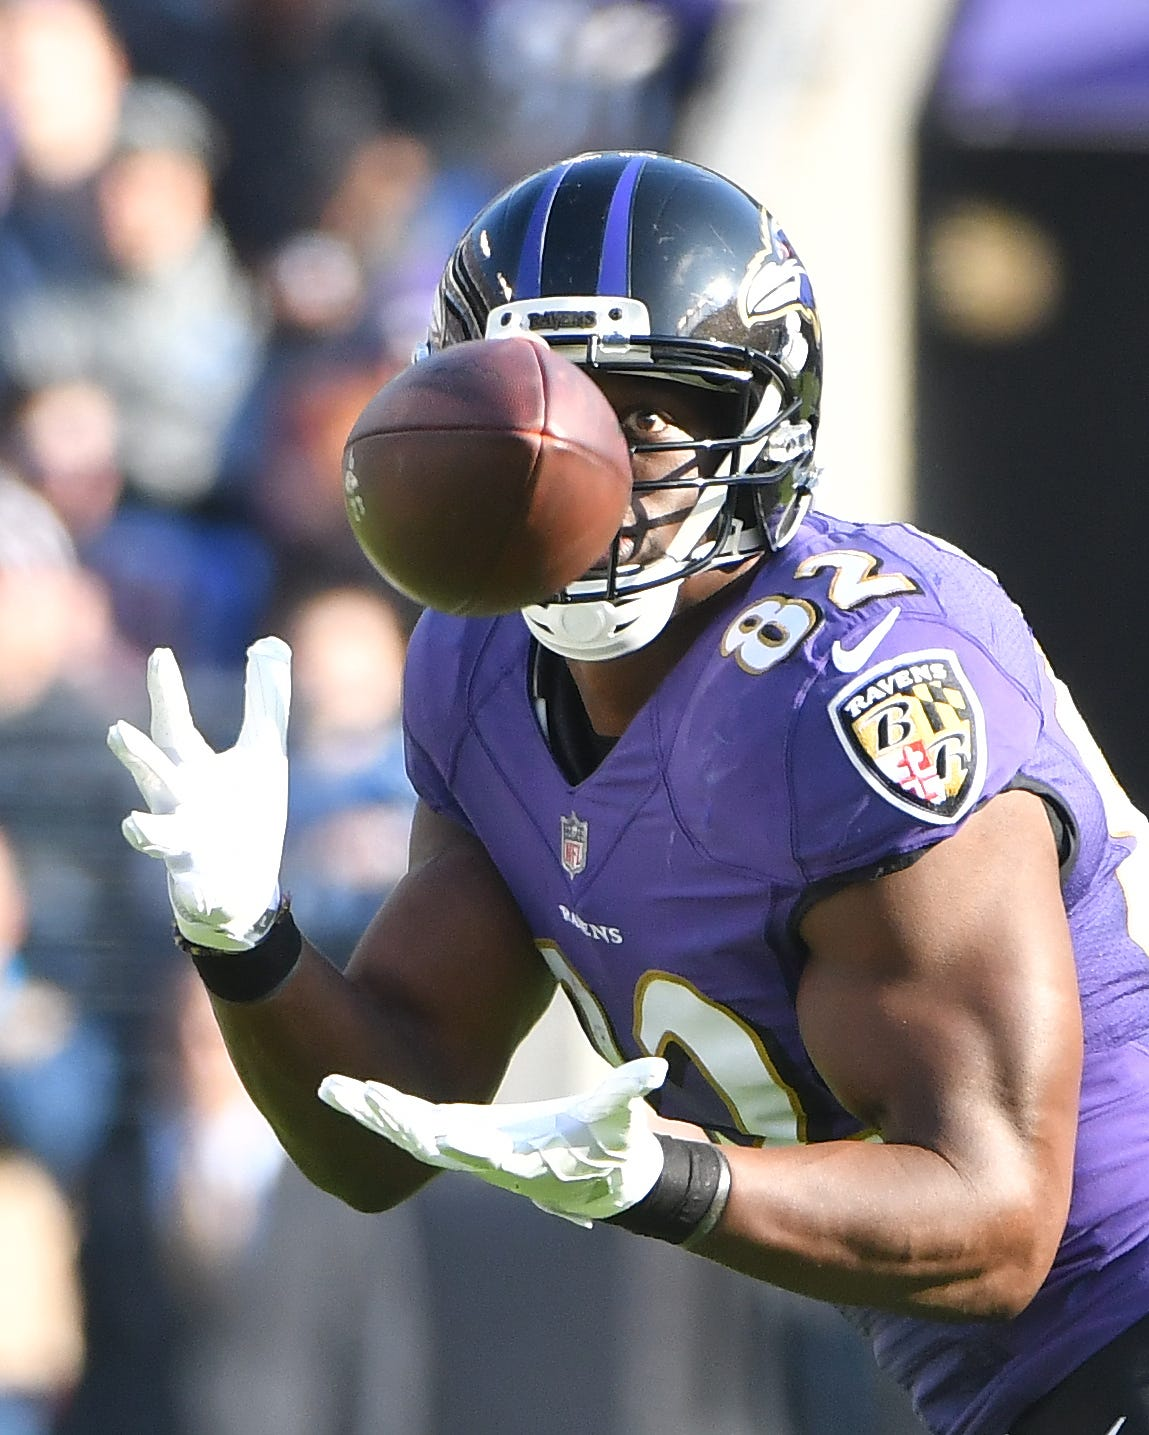 See the ball, be the ball as Ravens tight end Maxx